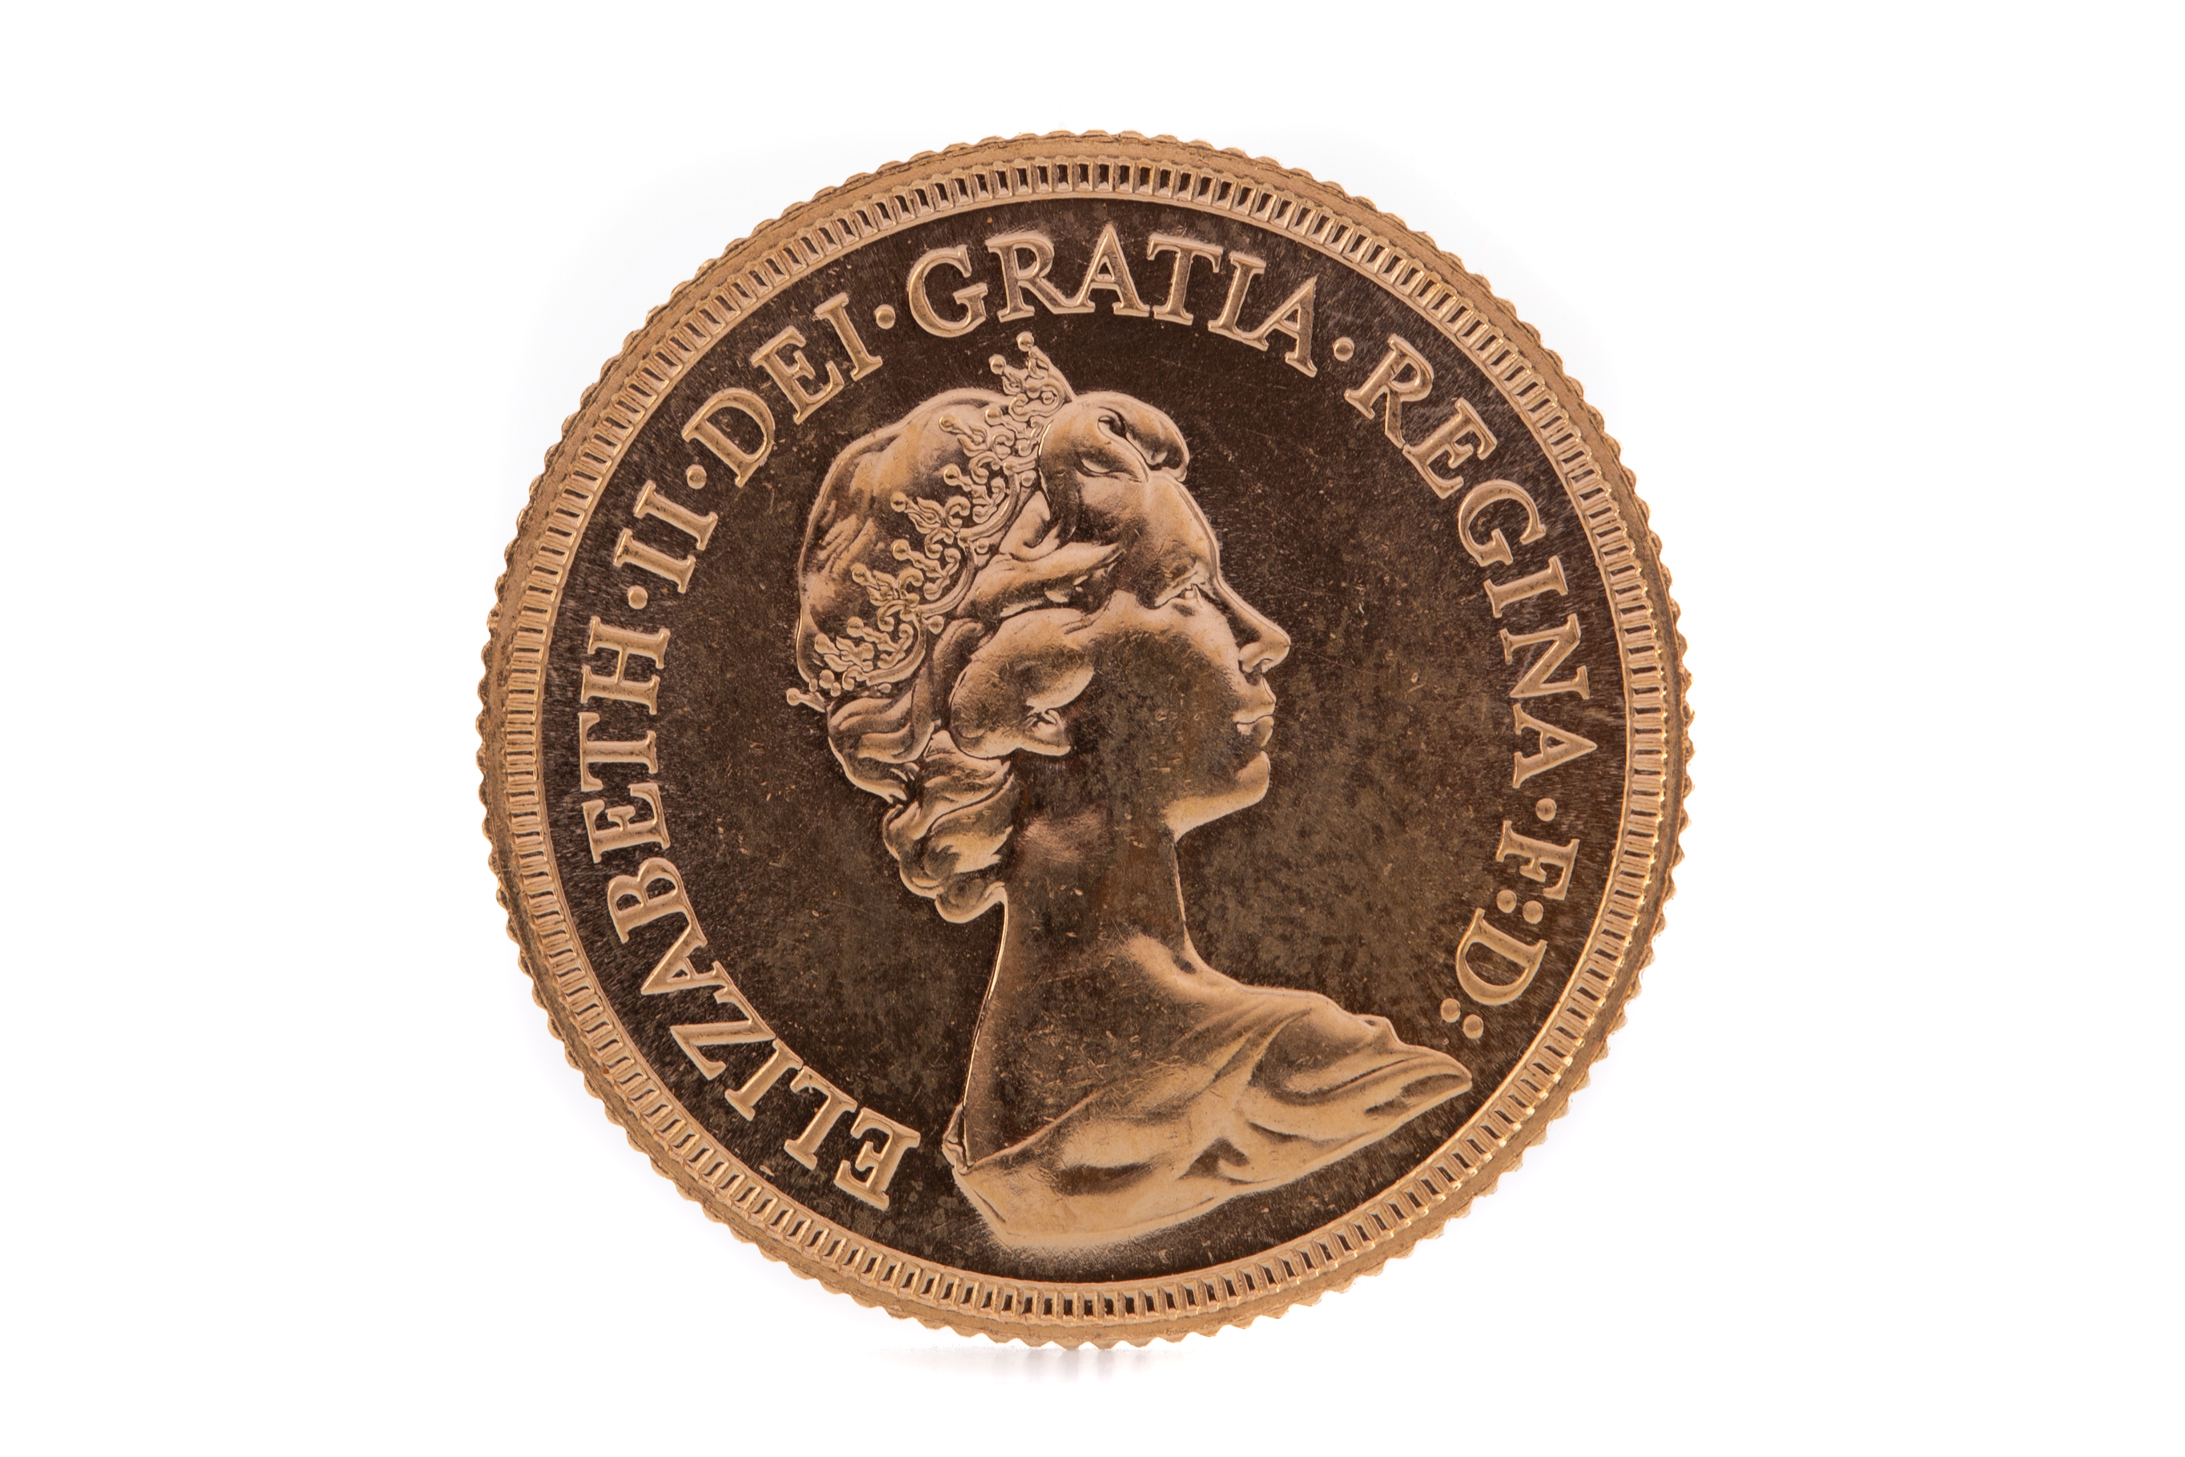 AN ELIZABETH II GOLD SOVEREIGN DATED 1981 - Image 2 of 2